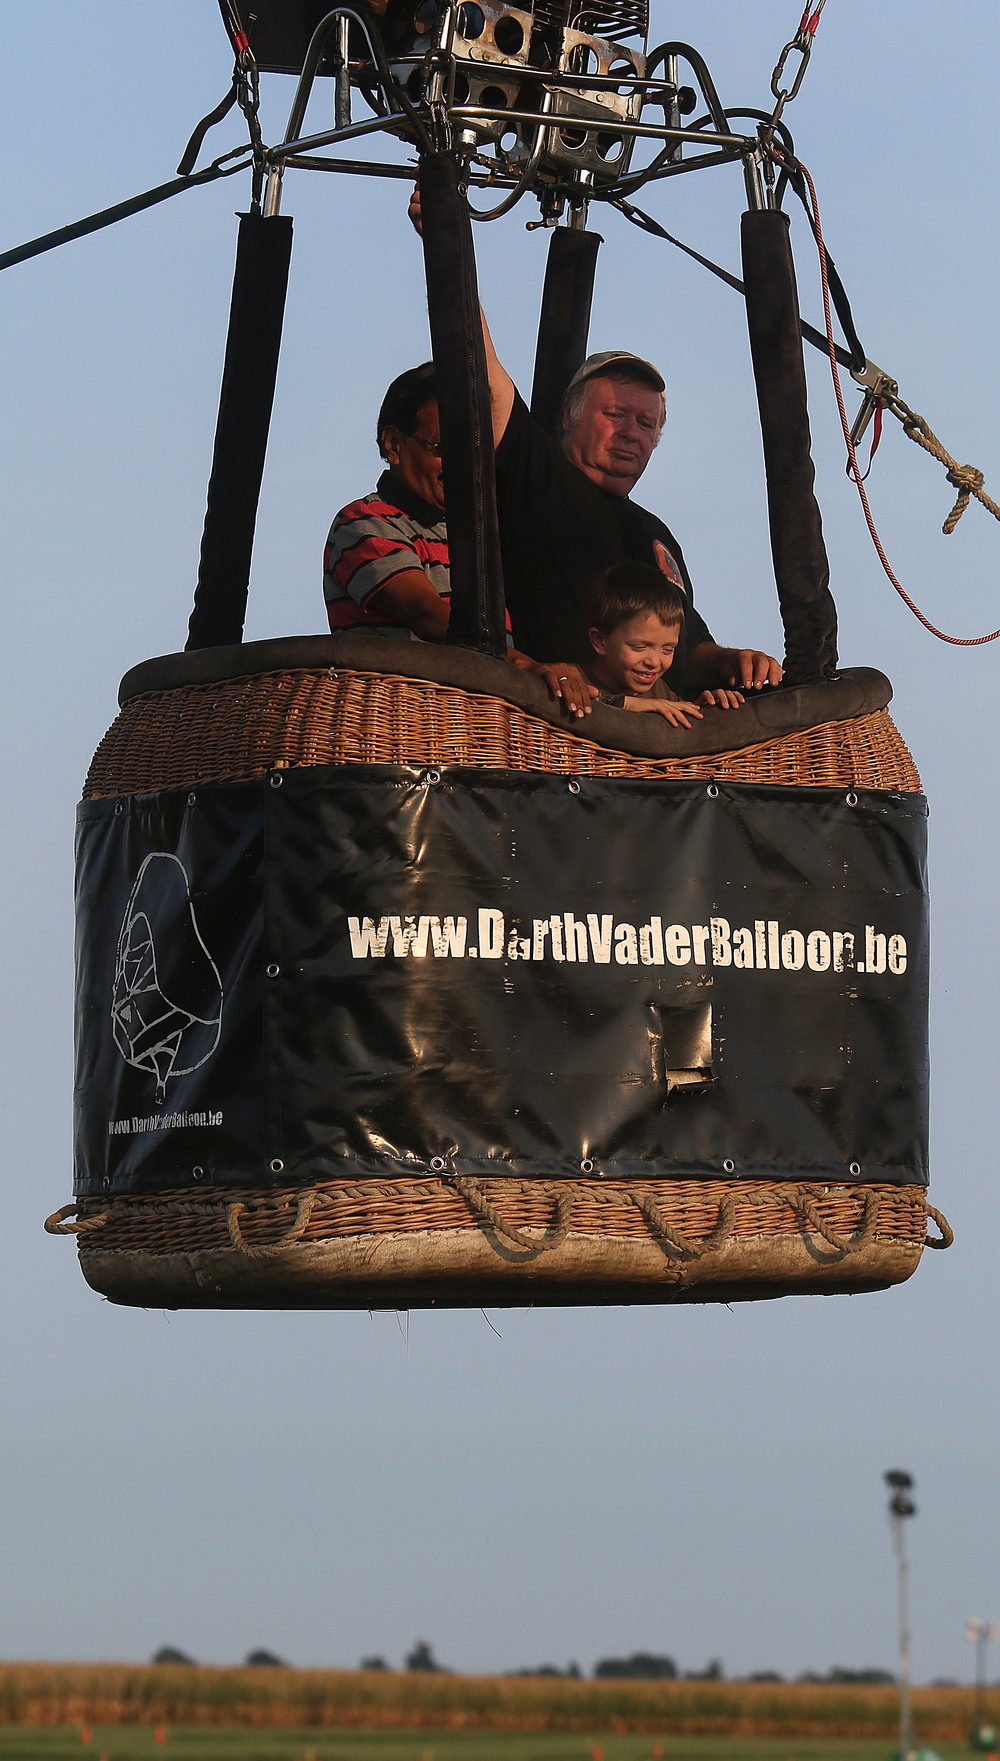 Children, including Aries Tanner, 10 of Lincoln seen in basket at front, got the opportunity to take a short ride up in the Darth Vader balloon while being tethered. Pilot Michel Lambert is behind Tanner. David Spencer/The State Journal-Register